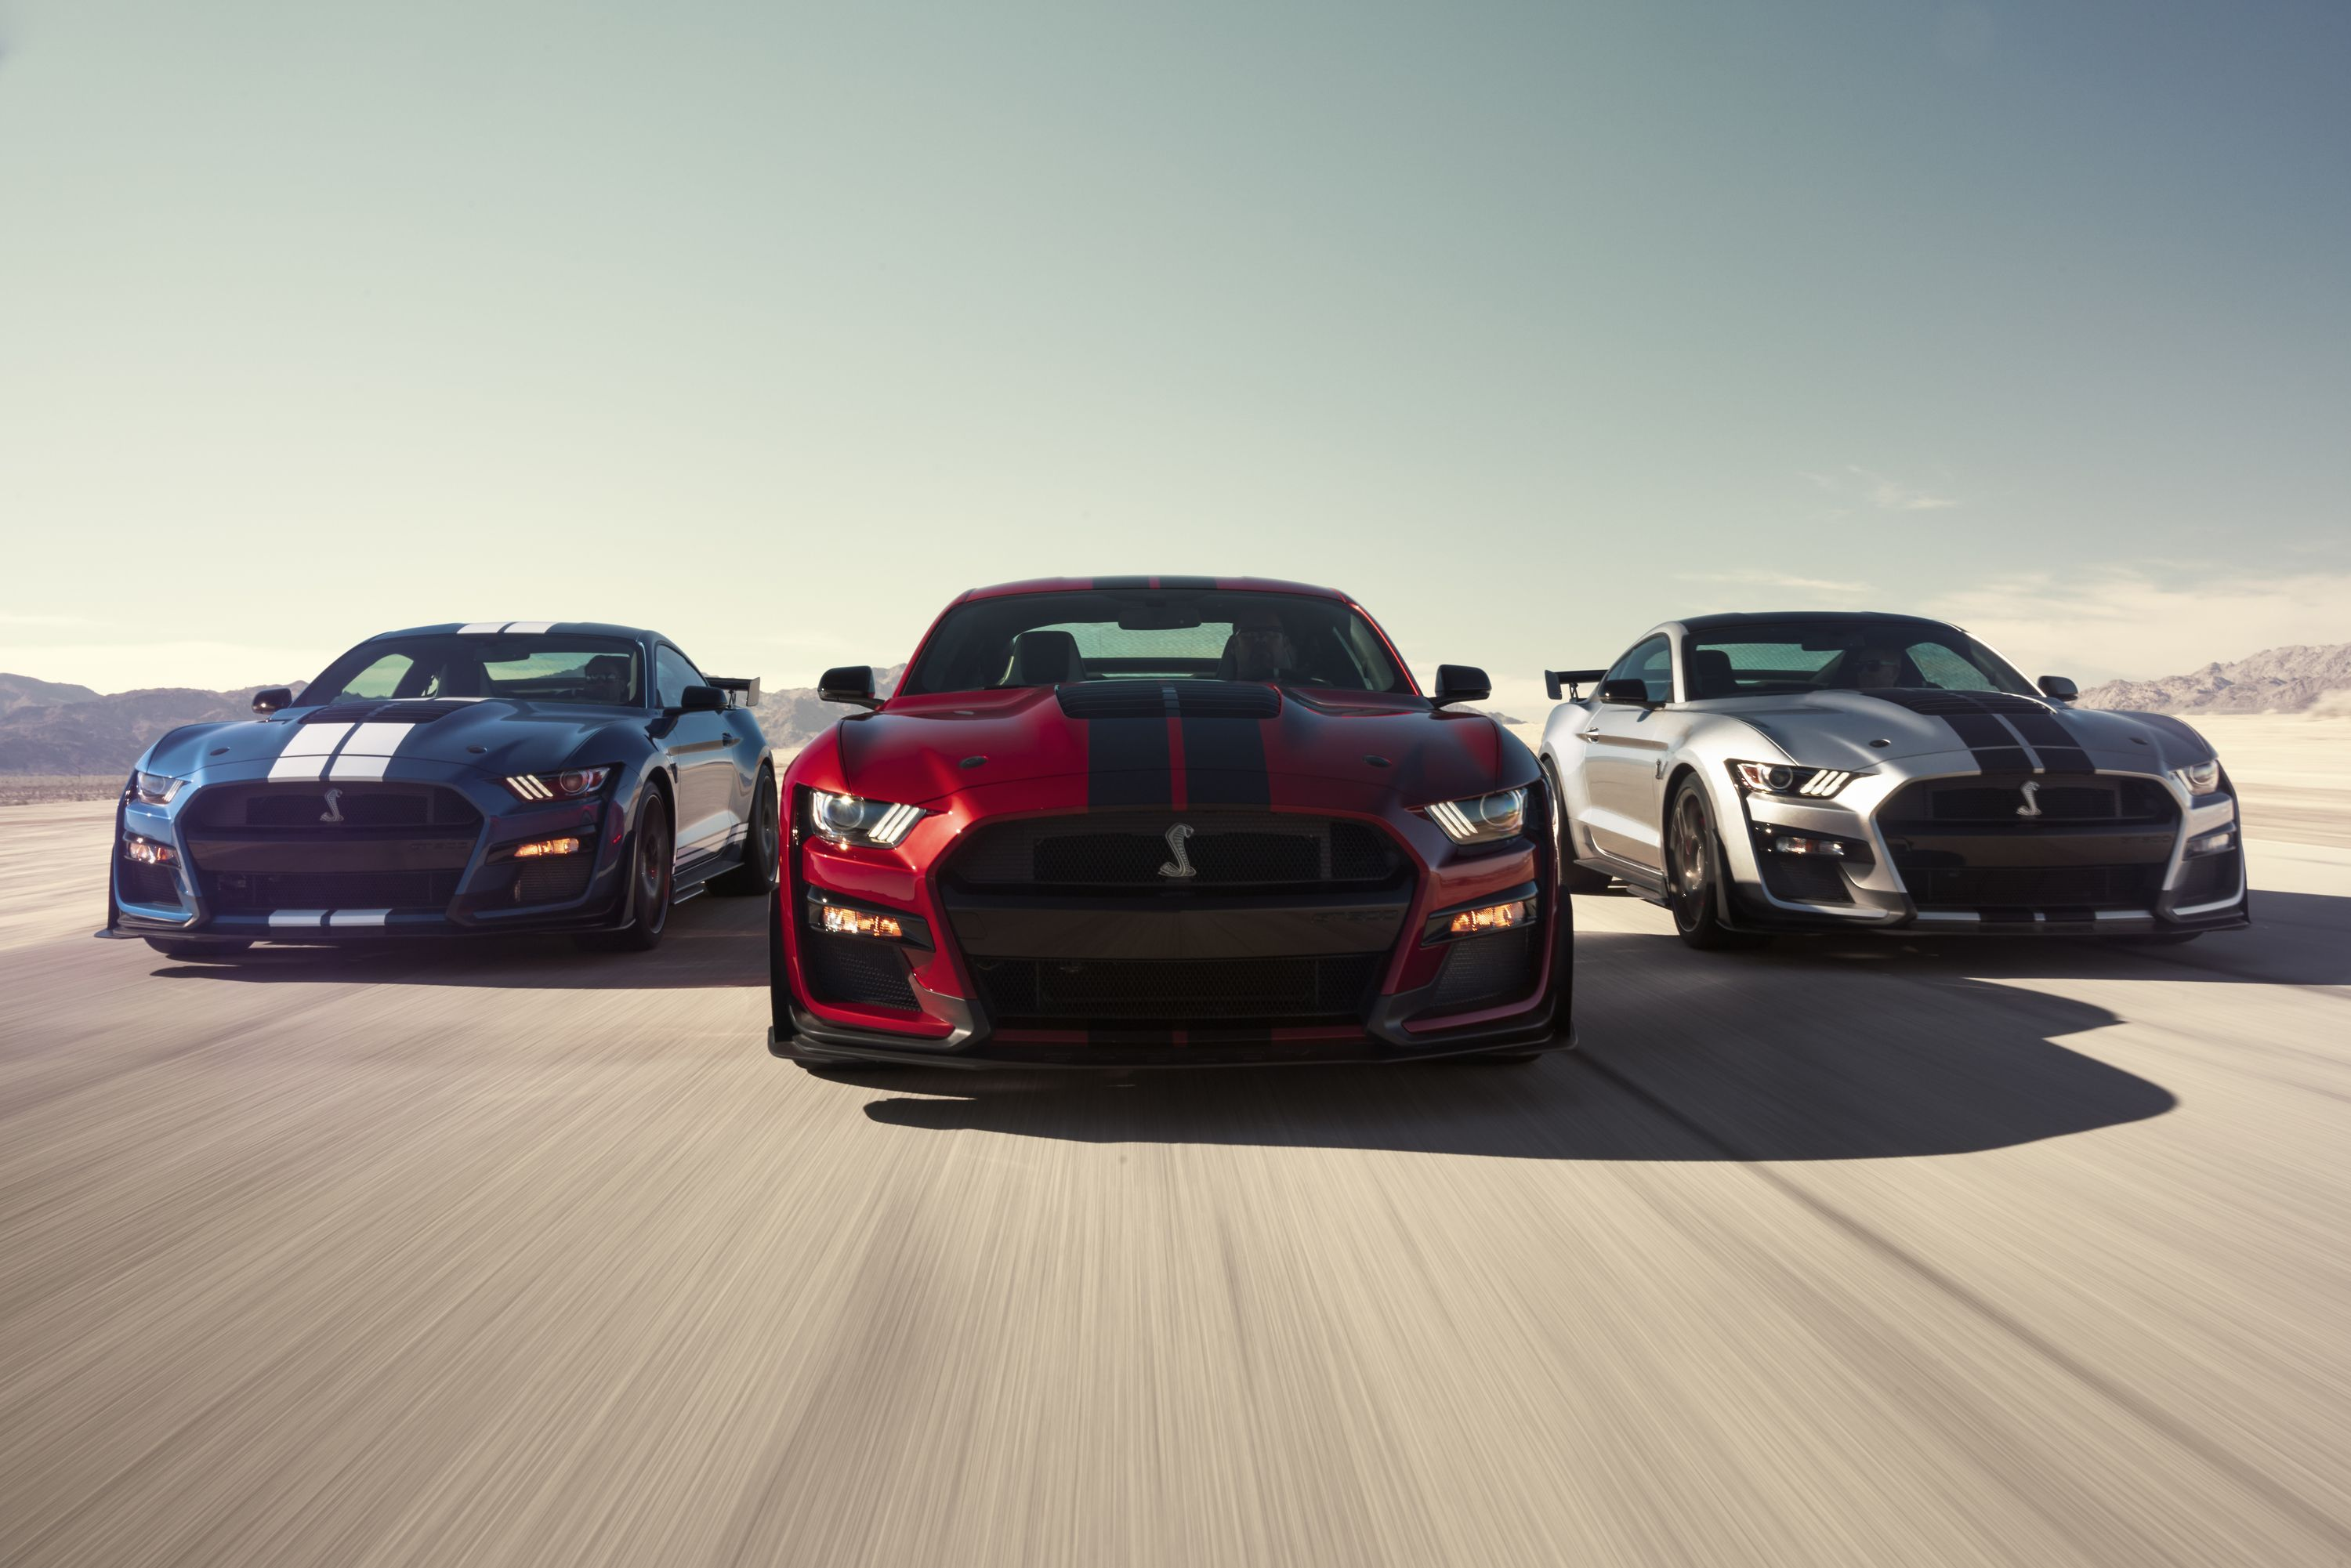 2020 Ford Mustang Shelby Gt500 Road Test Everything You Need To Know